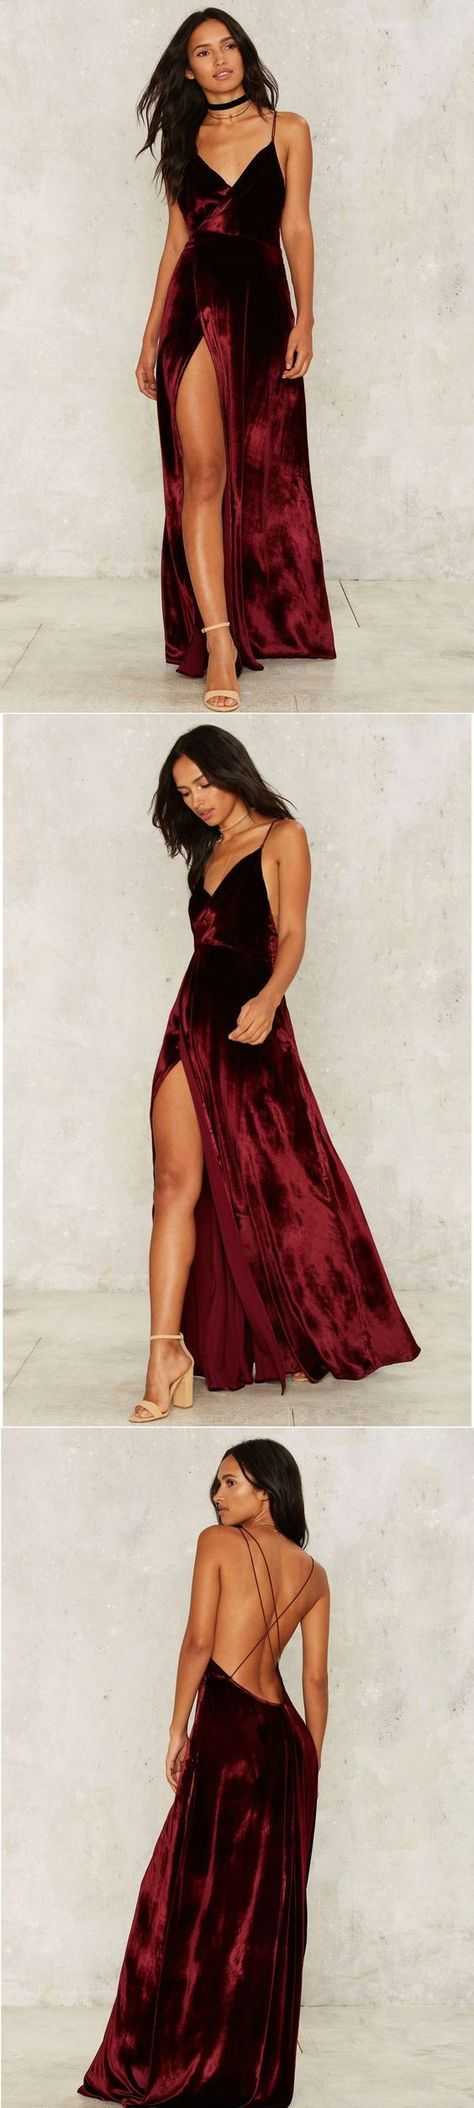 V Neck Backless Velvet Prom Dress